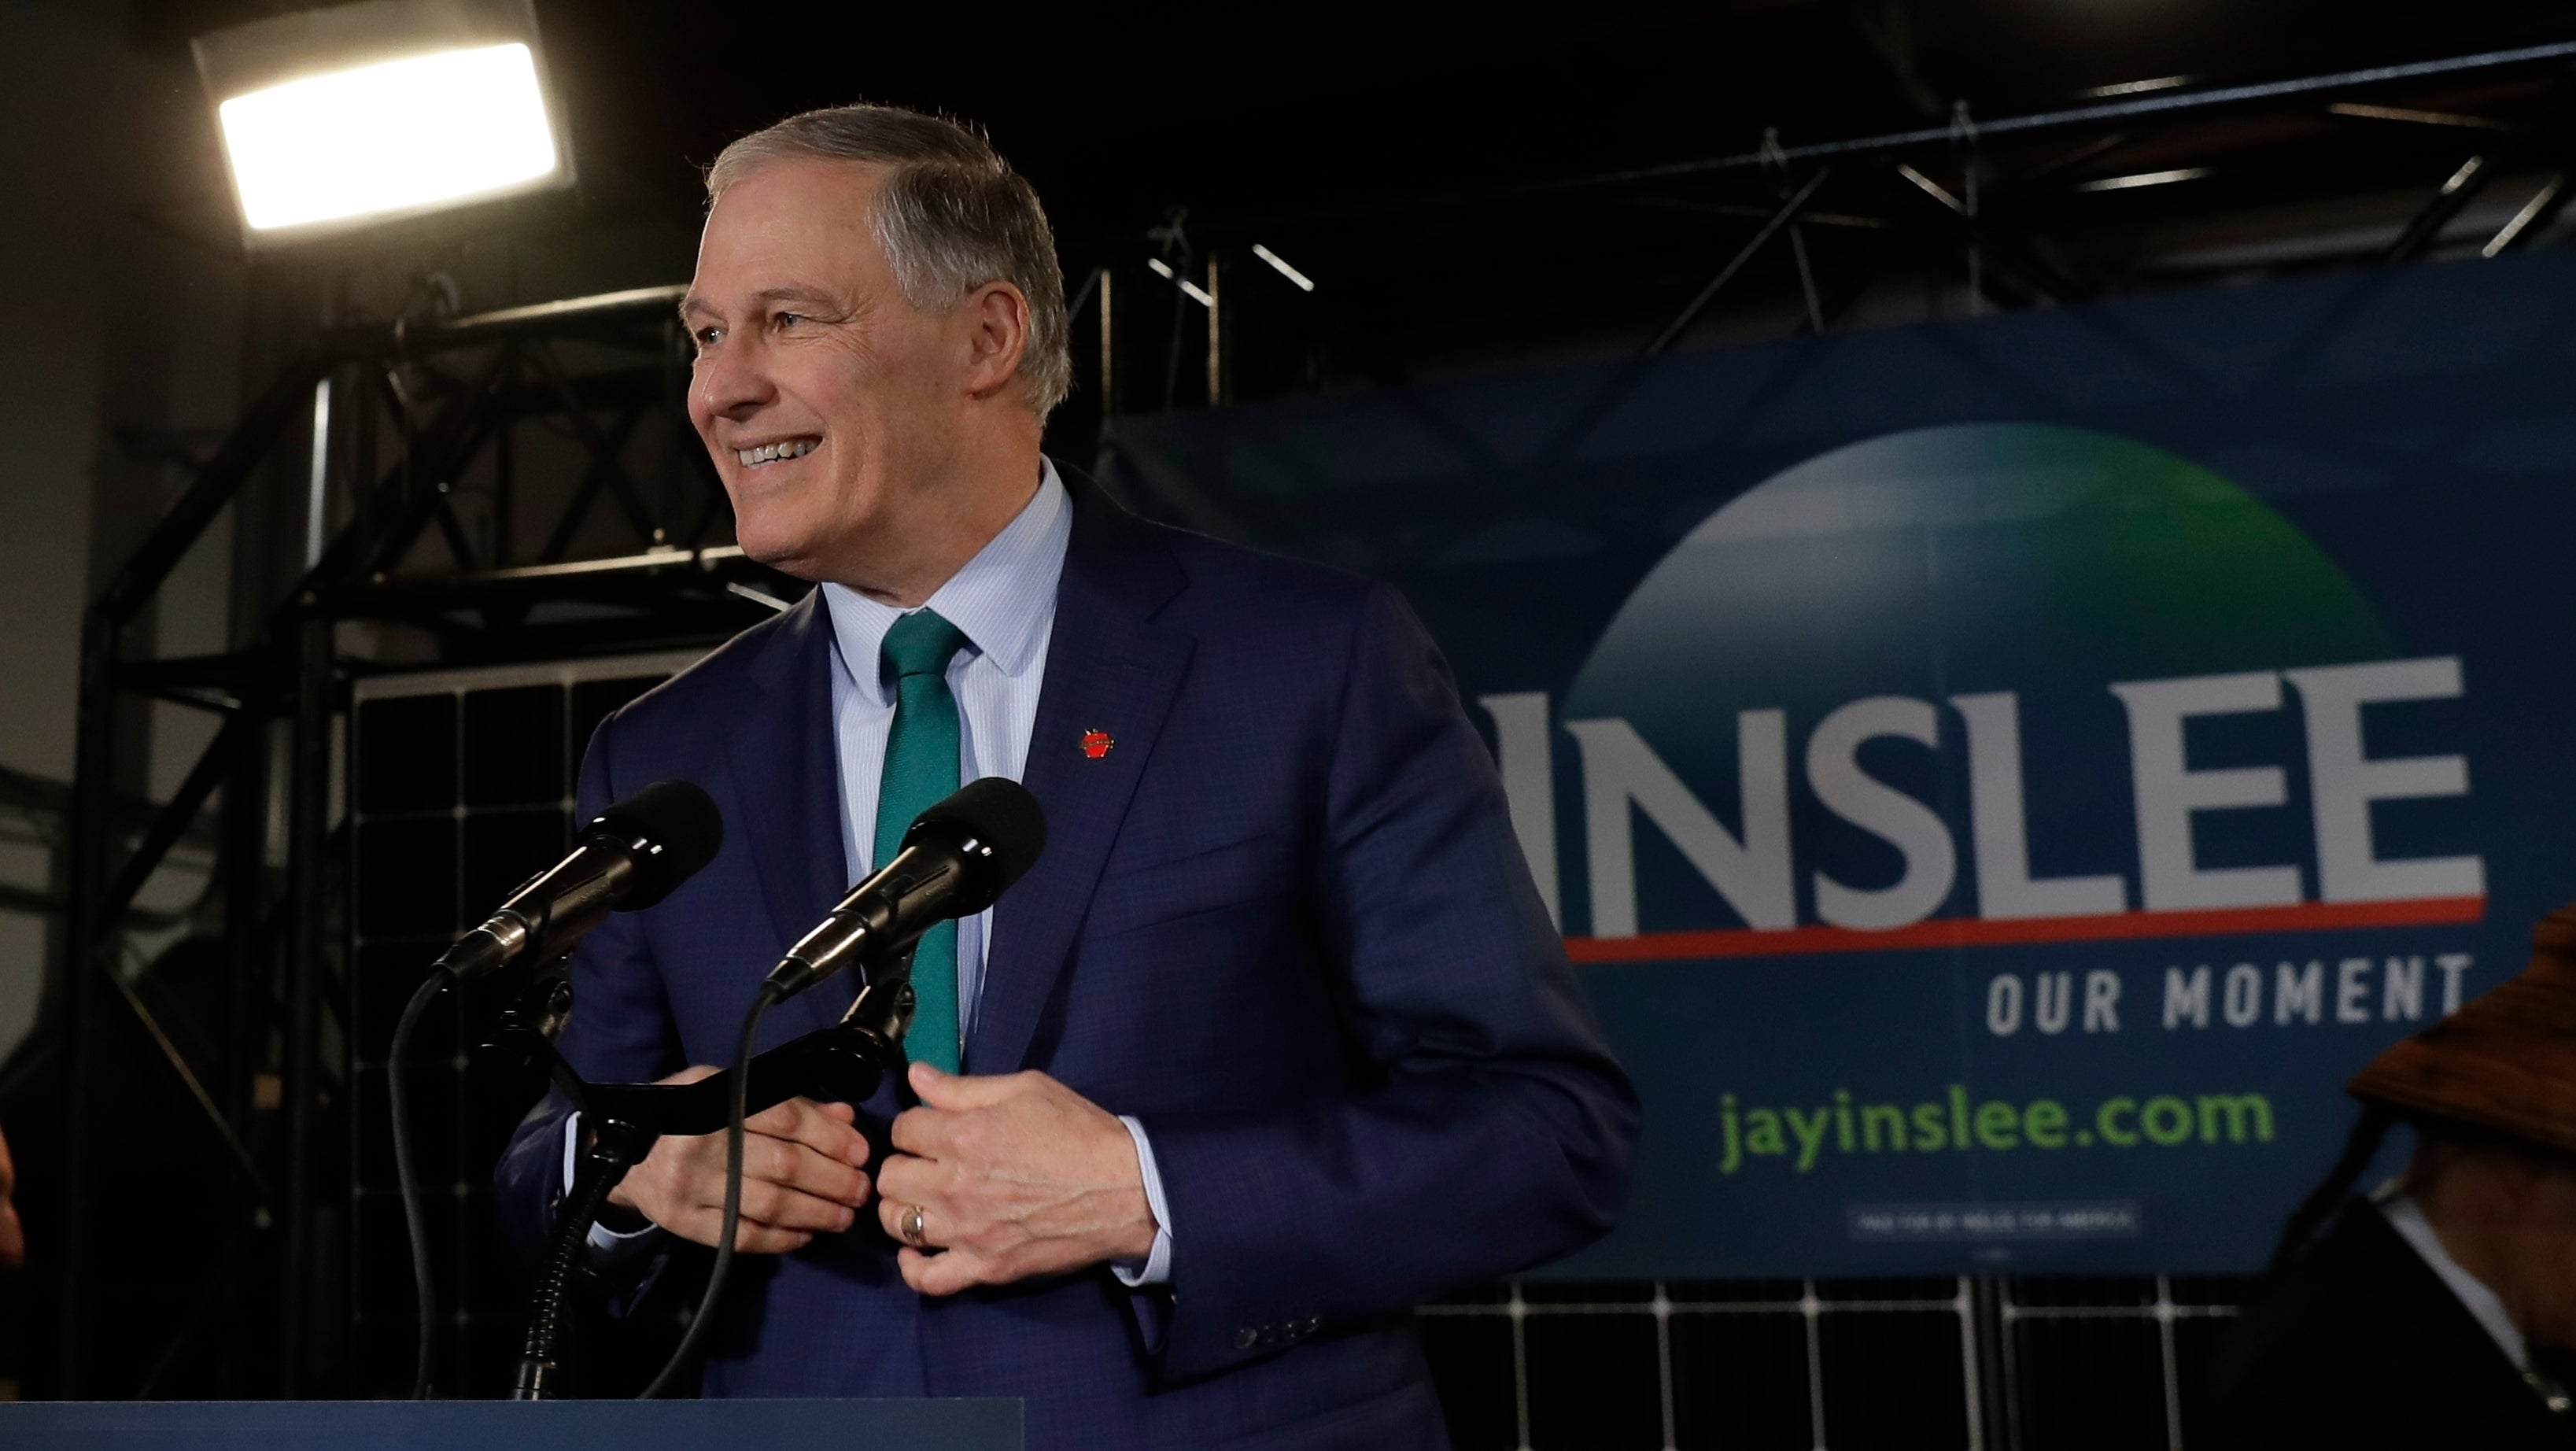 Days After Announcing Presidential Bid, Jay Inslee Stresses The 'Enormous Costs' Of Climate Change